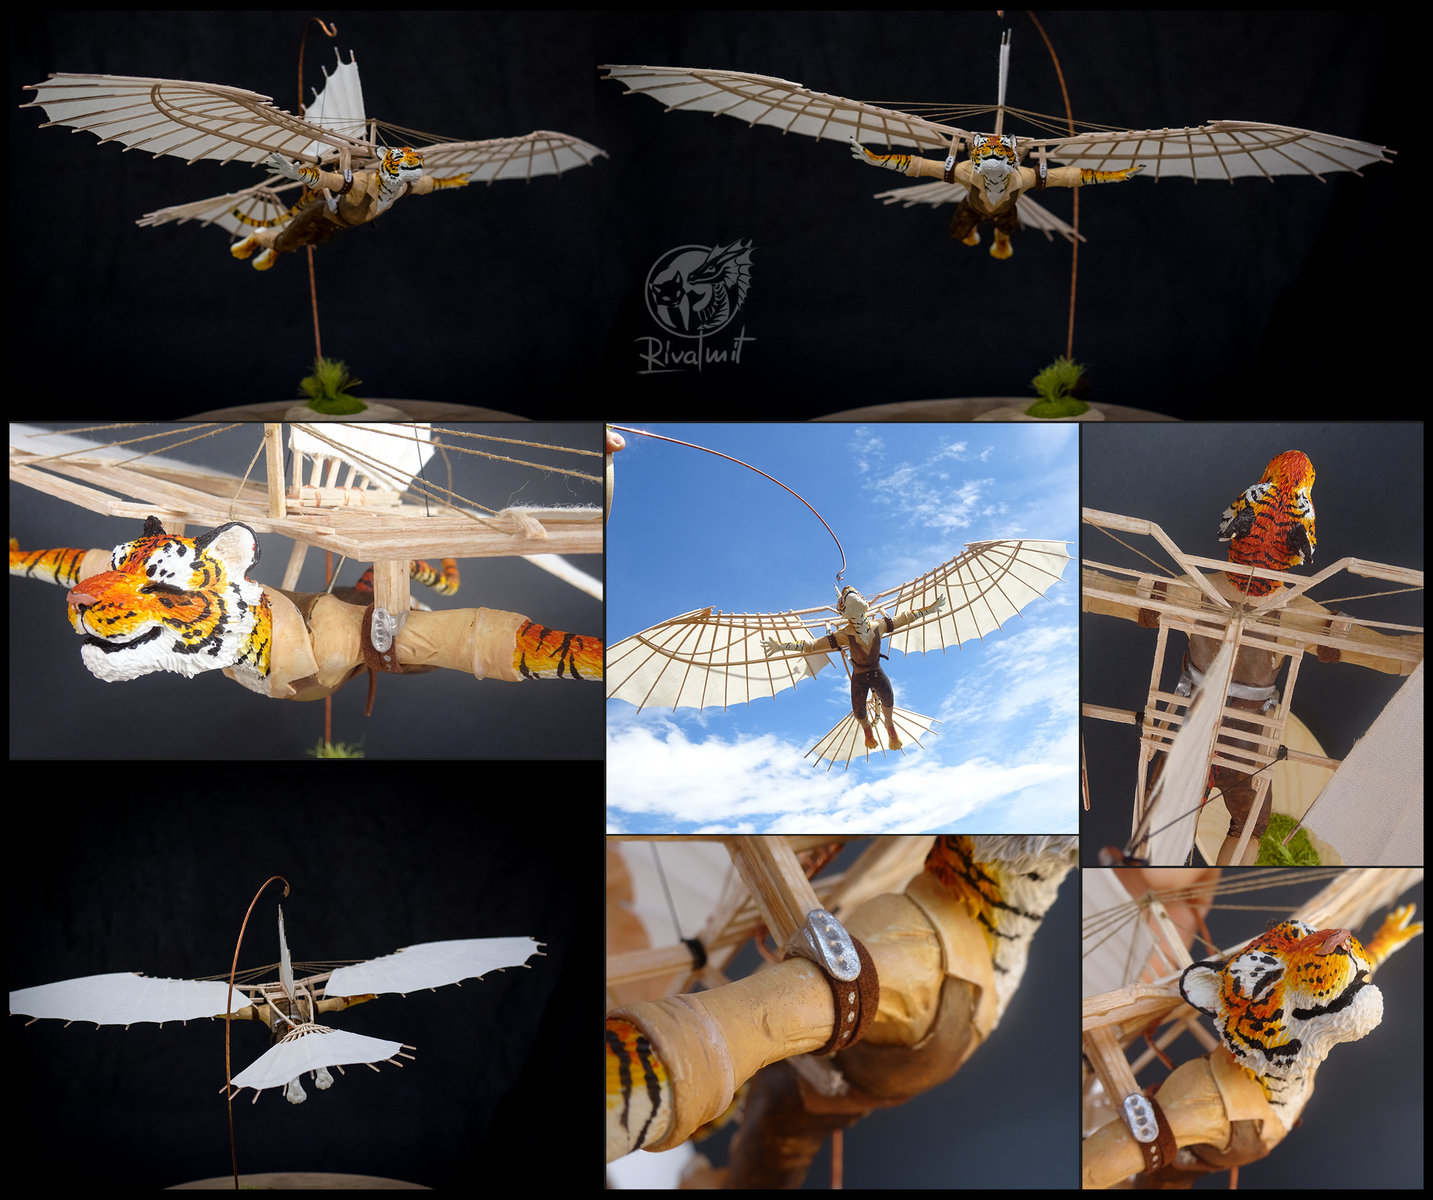 sculpture art tiger machine wings plane davinci Arcanum - Soar on the memorys lost to time